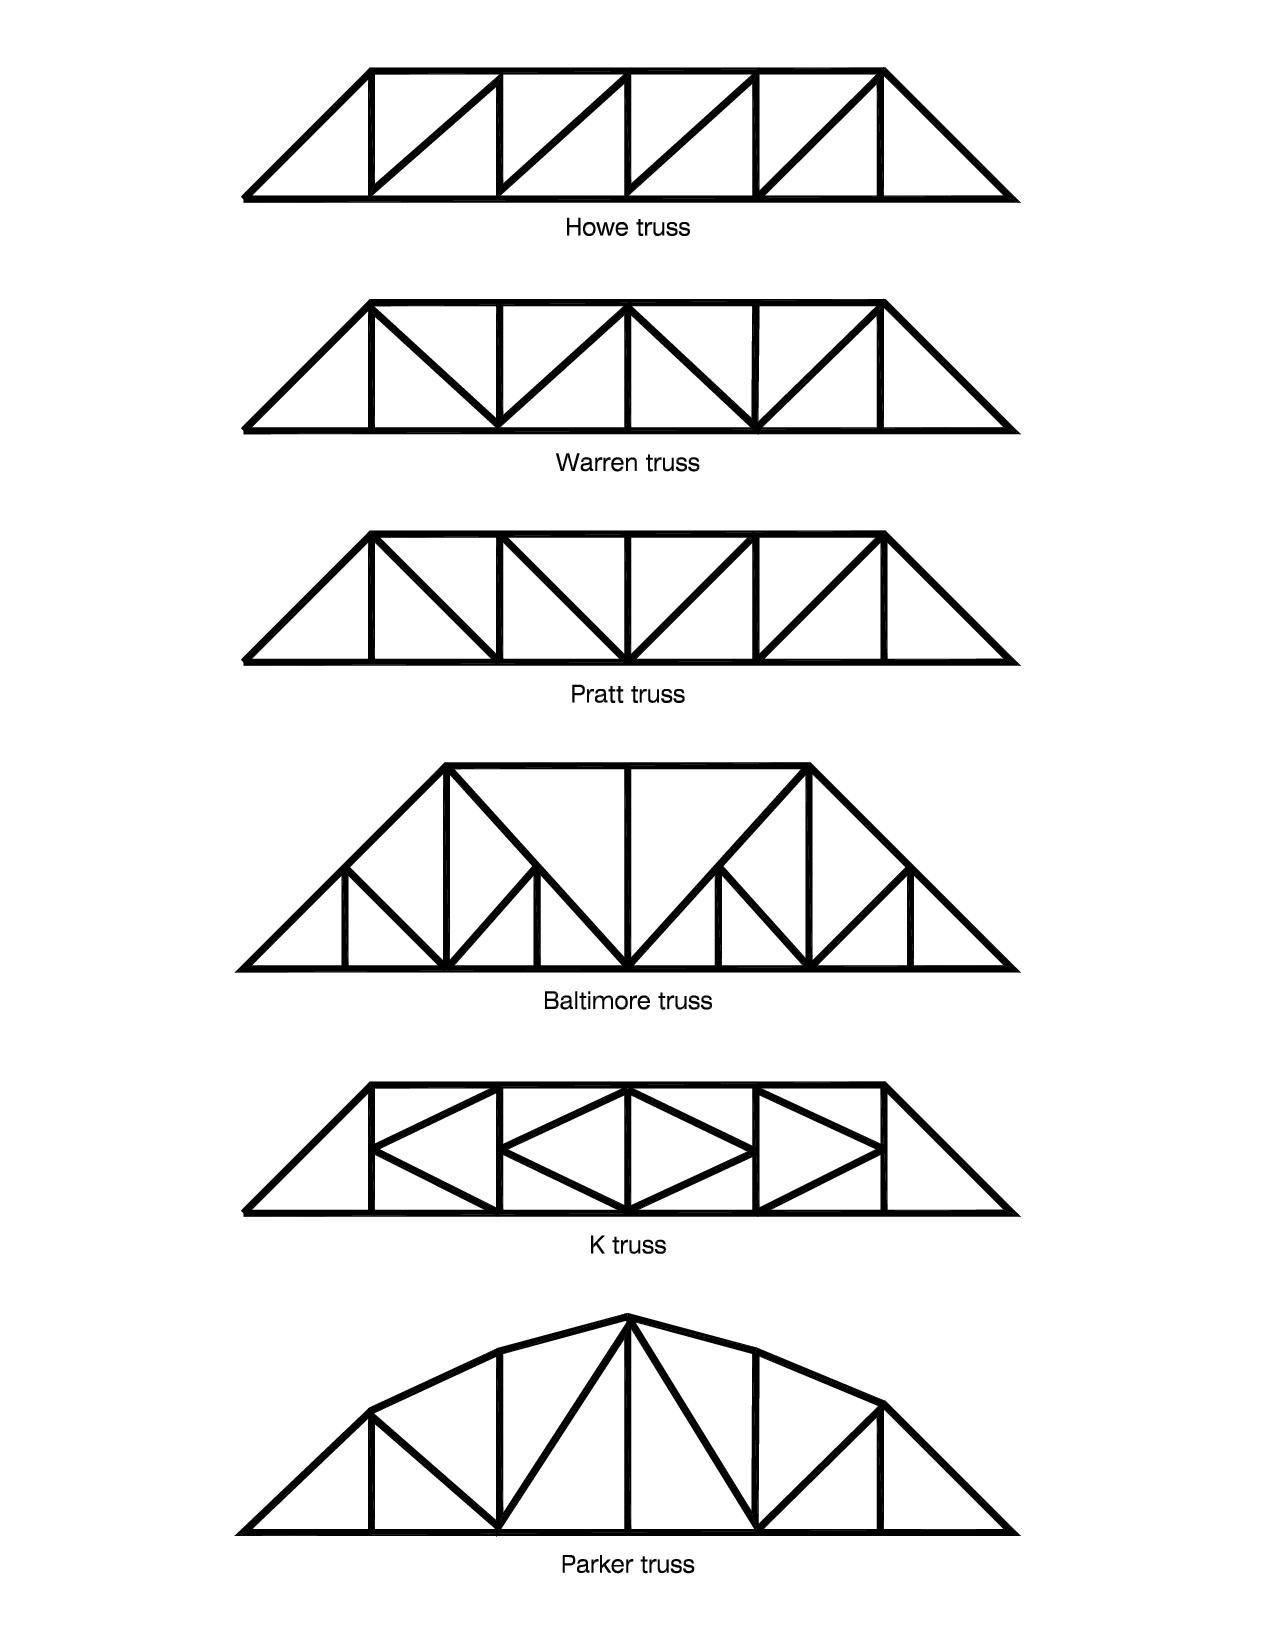 A Truss Is Structure That Composed Of Structural Members Which Howe Bridge Diagram Can Resist Pure Axial Forces And Connected At Their Ends By Flexible Connections To Form